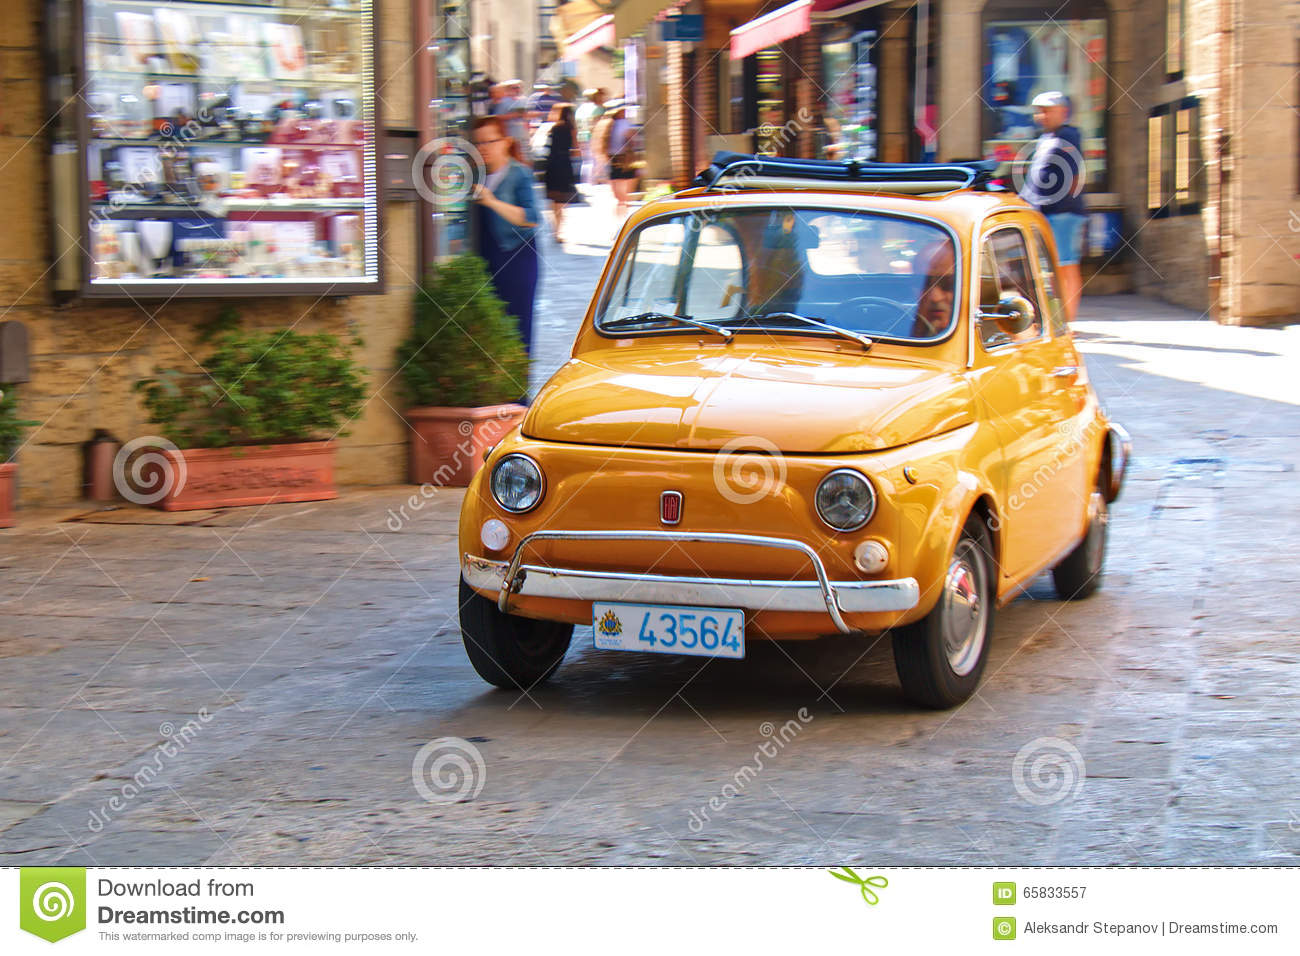 petite voiture de ville fiat 500 sur la rue en italie photographie ditorial image du italien. Black Bedroom Furniture Sets. Home Design Ideas